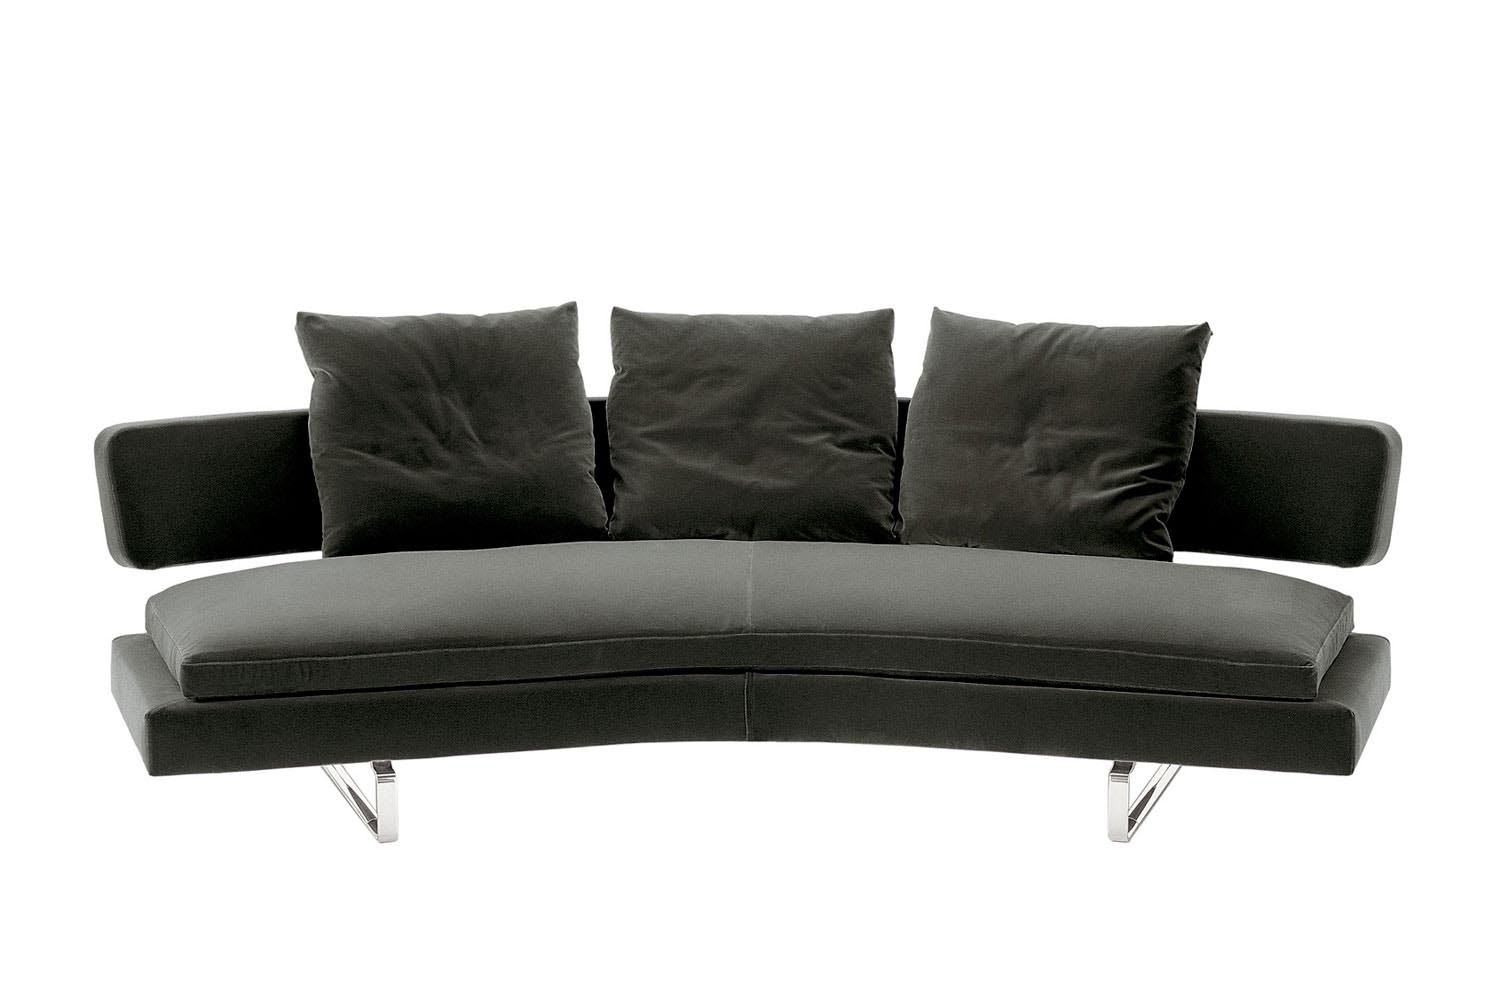 Arne Sofa by Antonio Citterio for B&B Italia